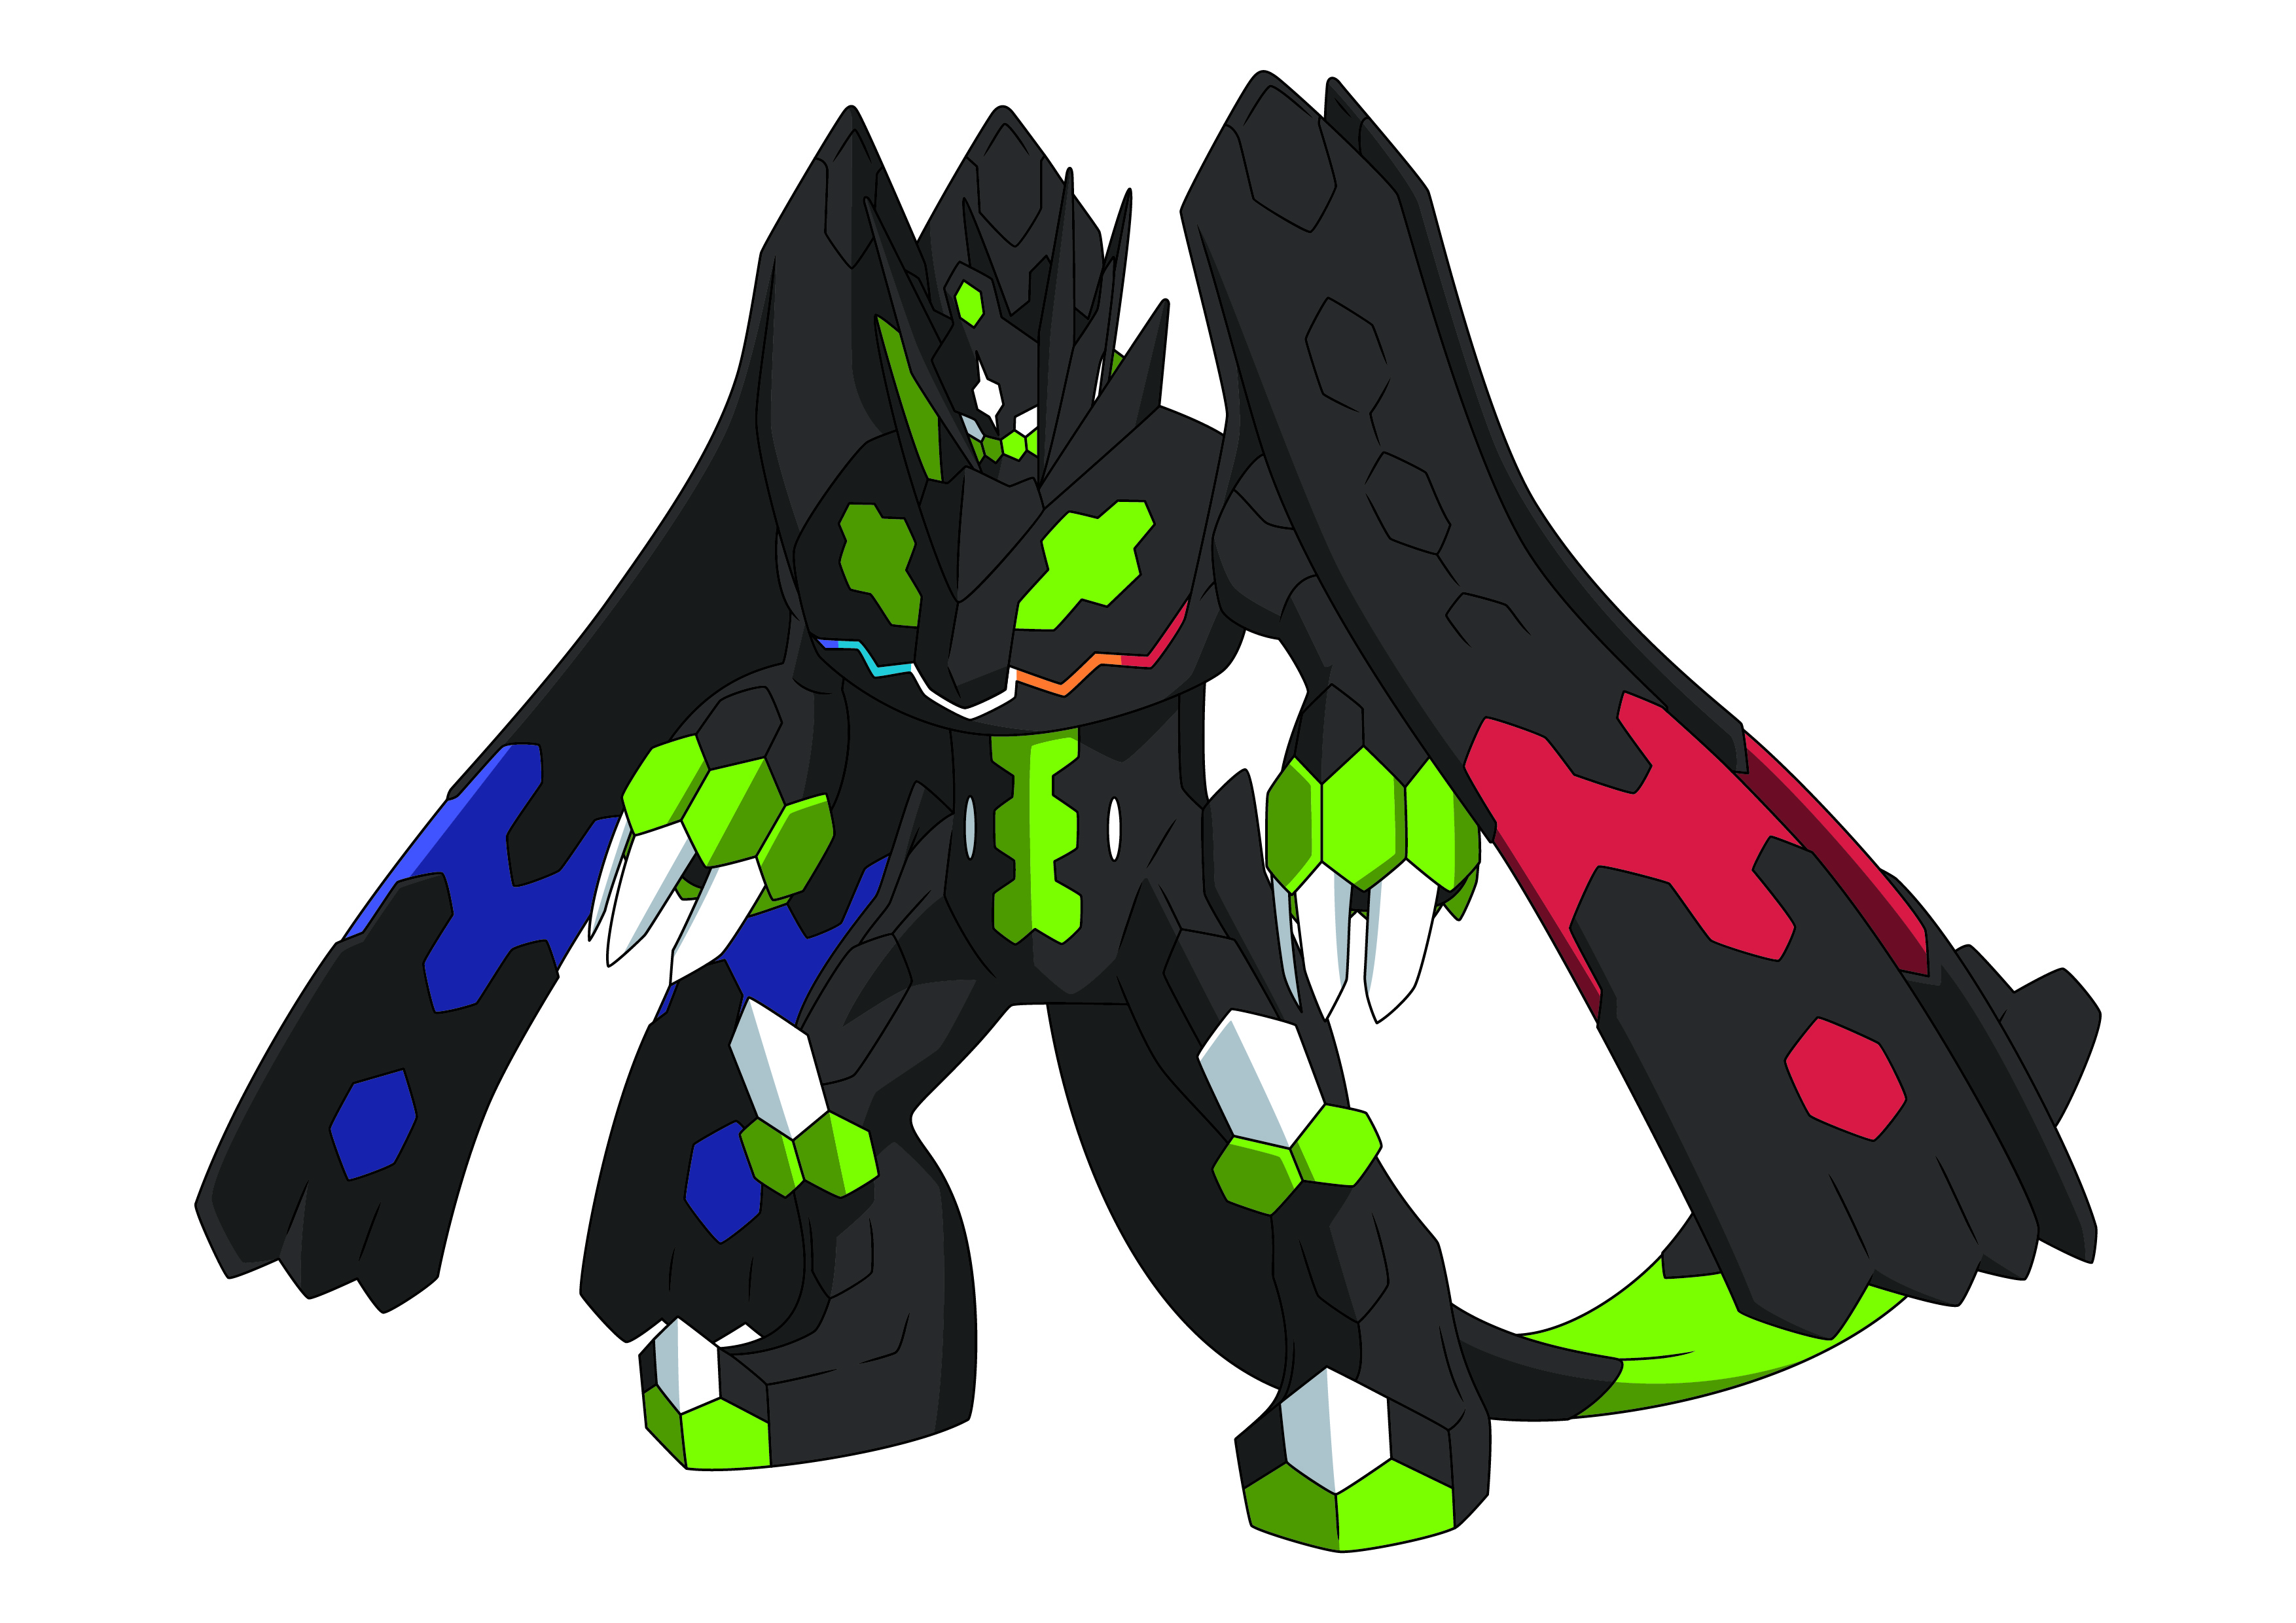 new zygarde forms to appear in anime